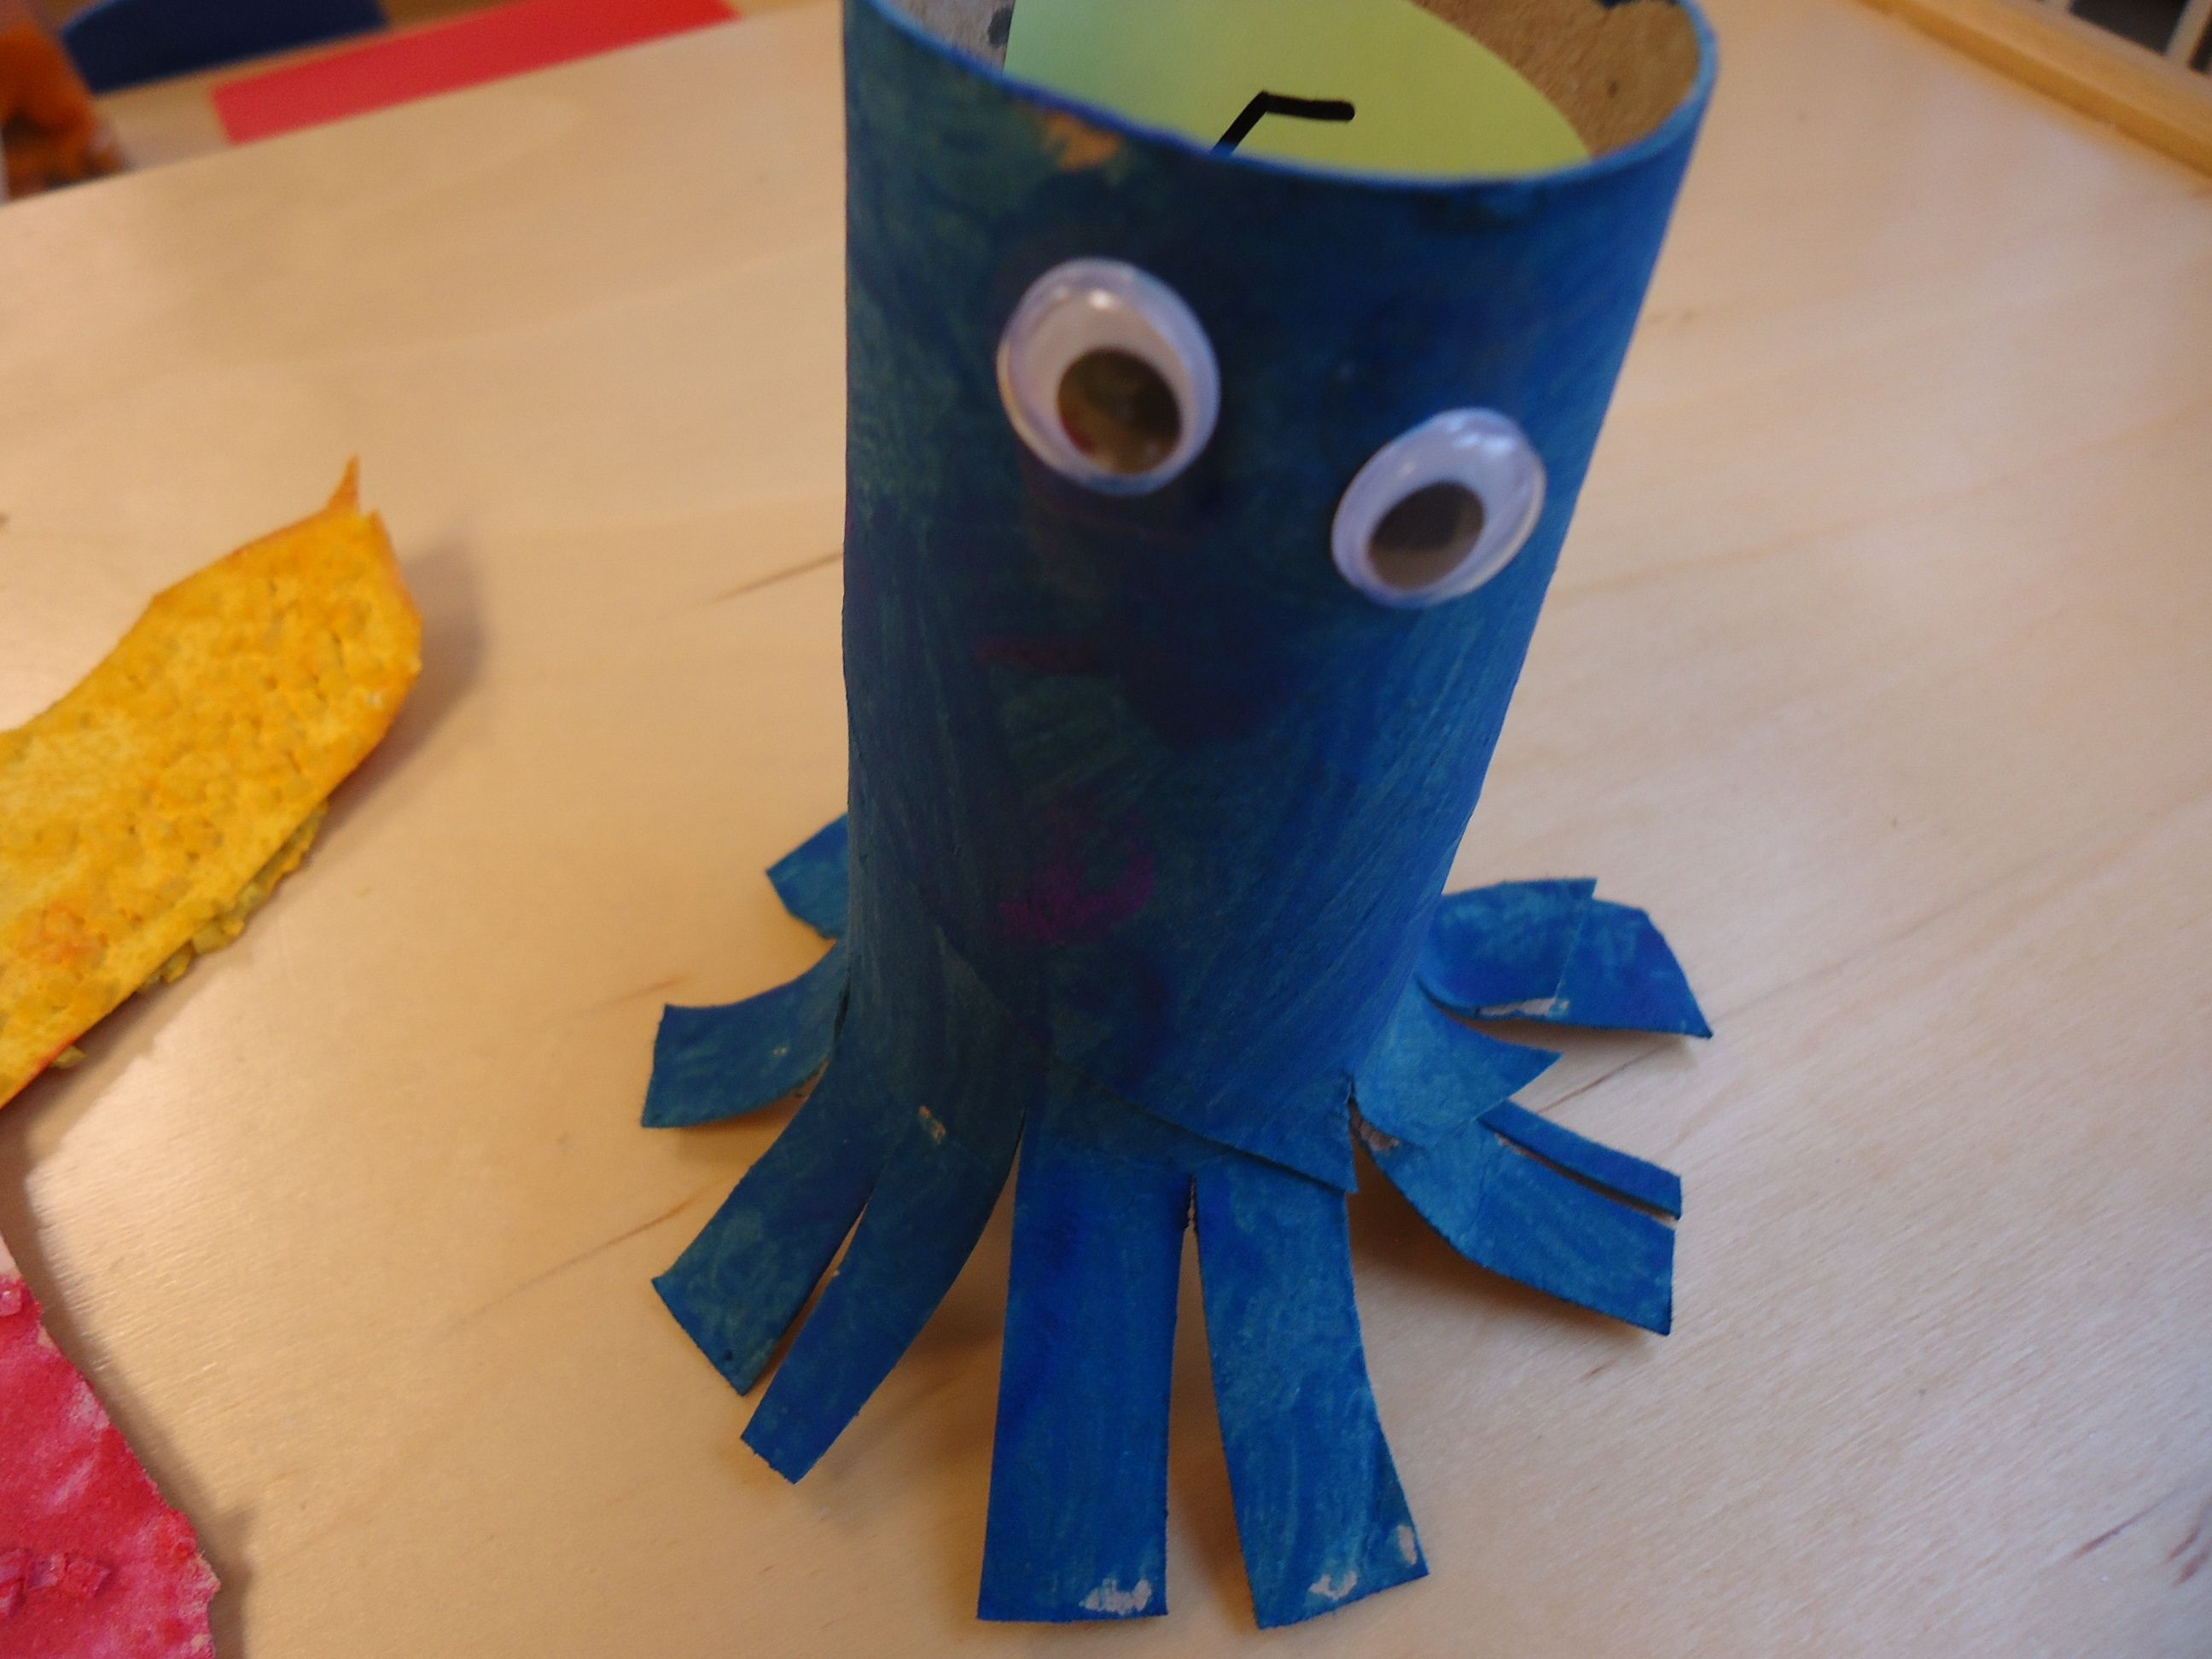 Under The Sea Octopus Art The Children Cut The Bottom Of A Toilet Paper Tube To Resemble The